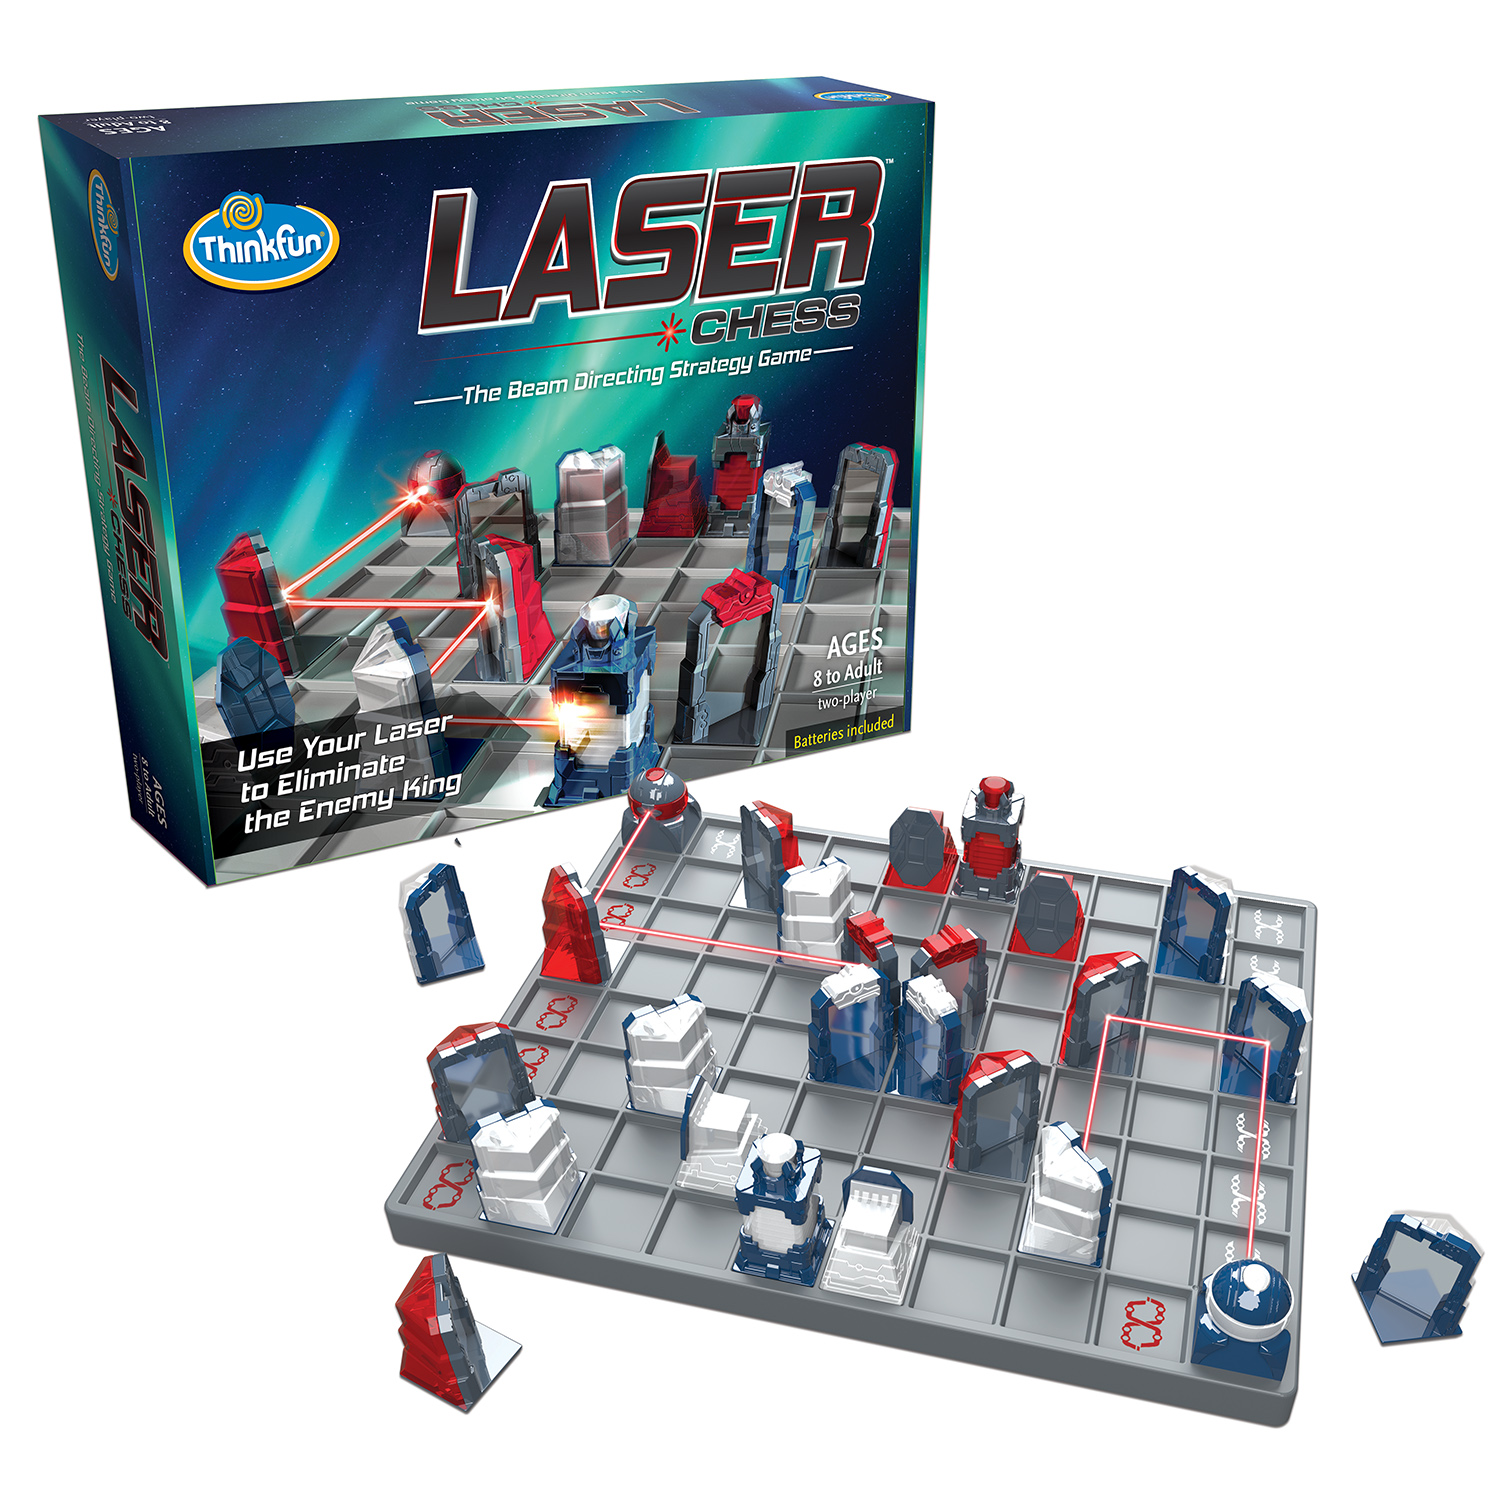 Click here to buy Laser Chess: The Beam Directing Strategy Game by ThinkFun.